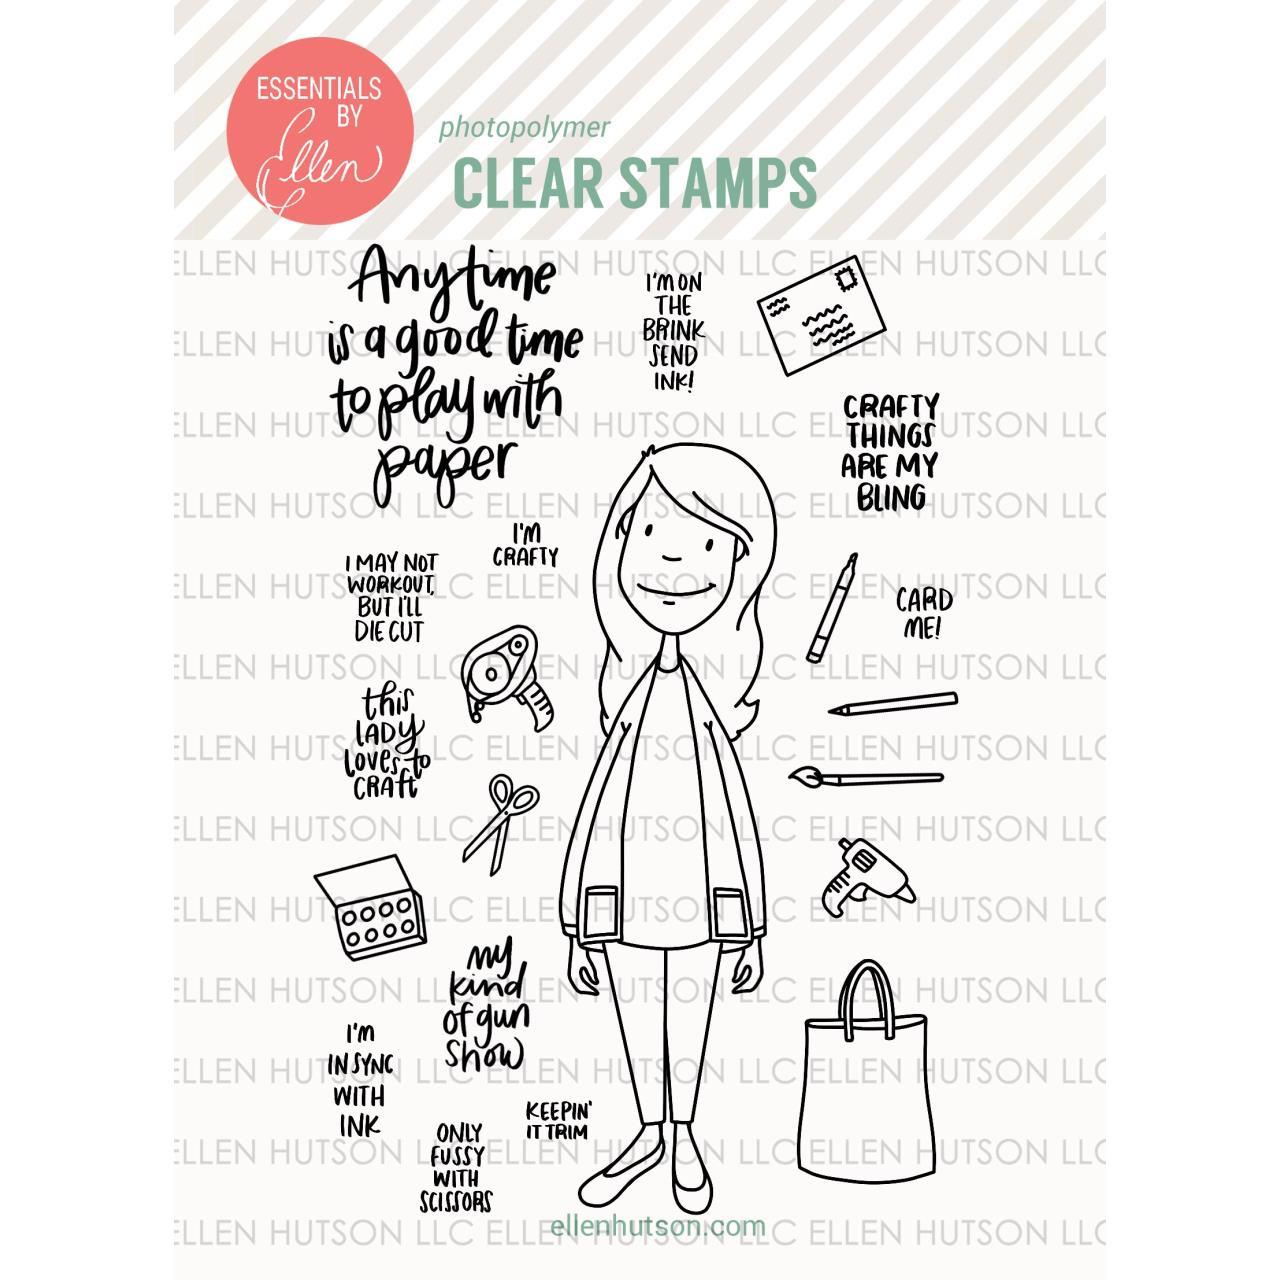 Essentials by Ellen Clear Stamps, Leading Ladies - Crafty Lady by Brandi Kincaid -